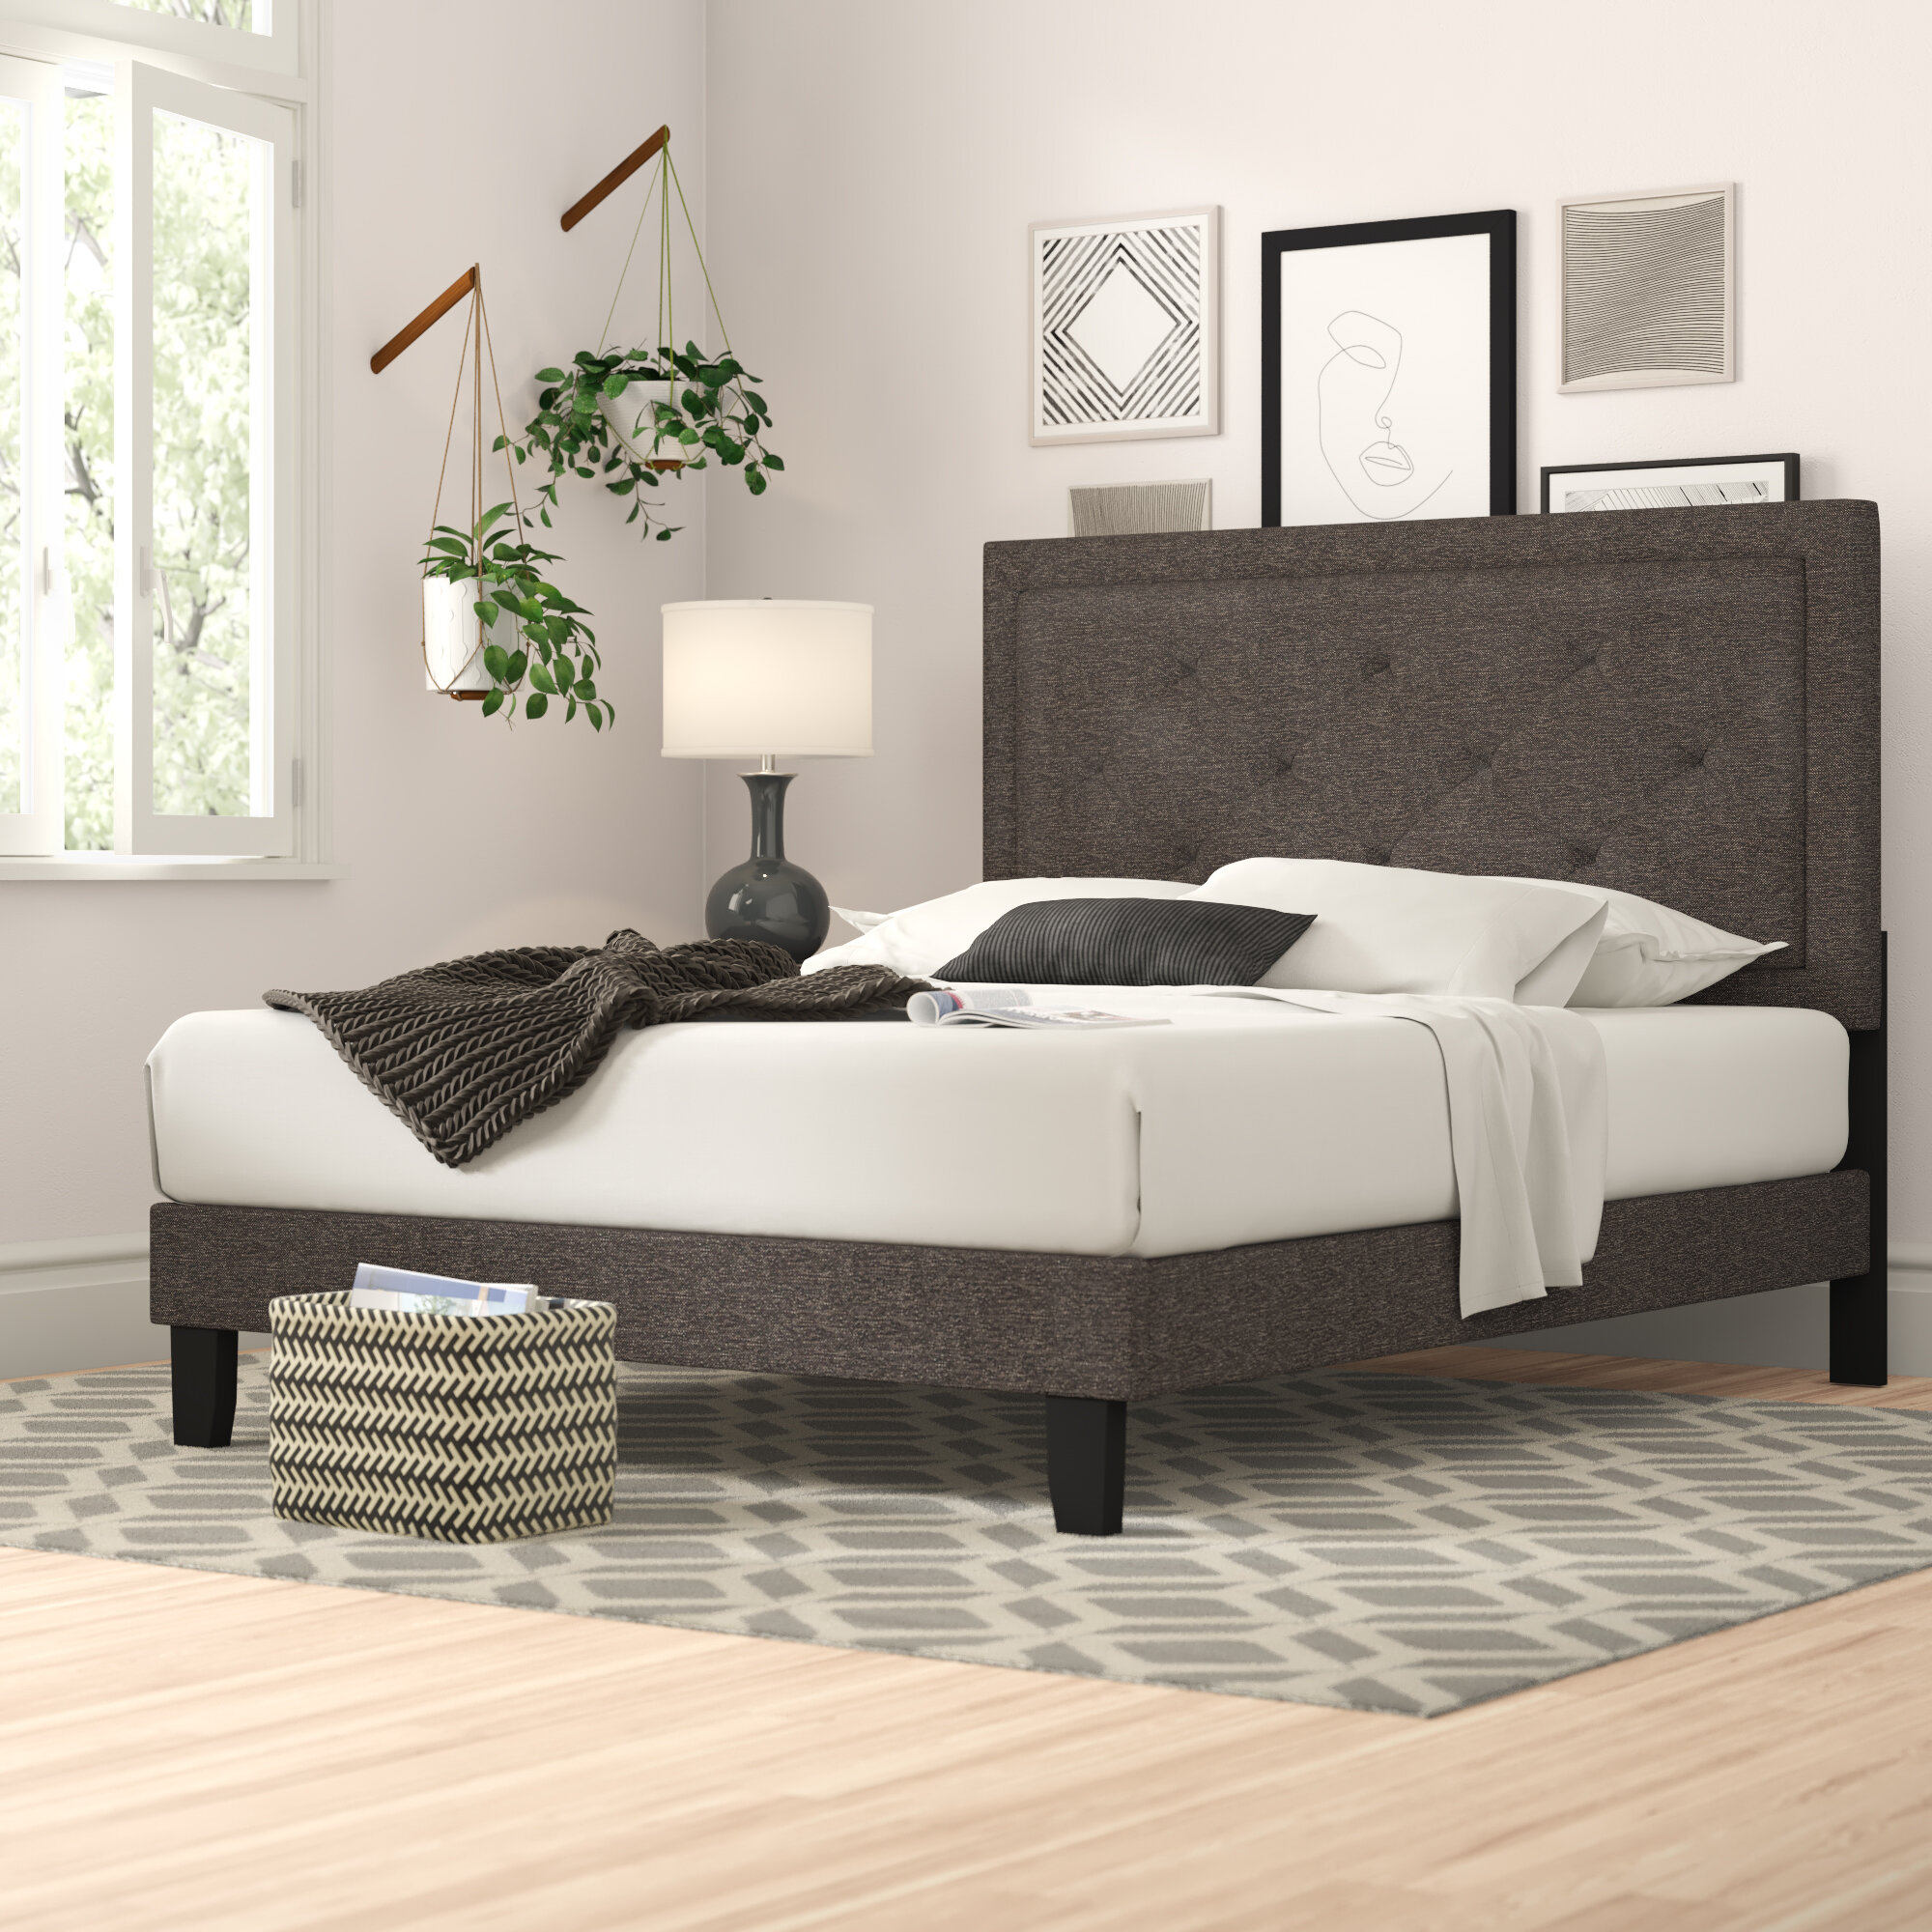 Amoll Standard Upholstered Bed